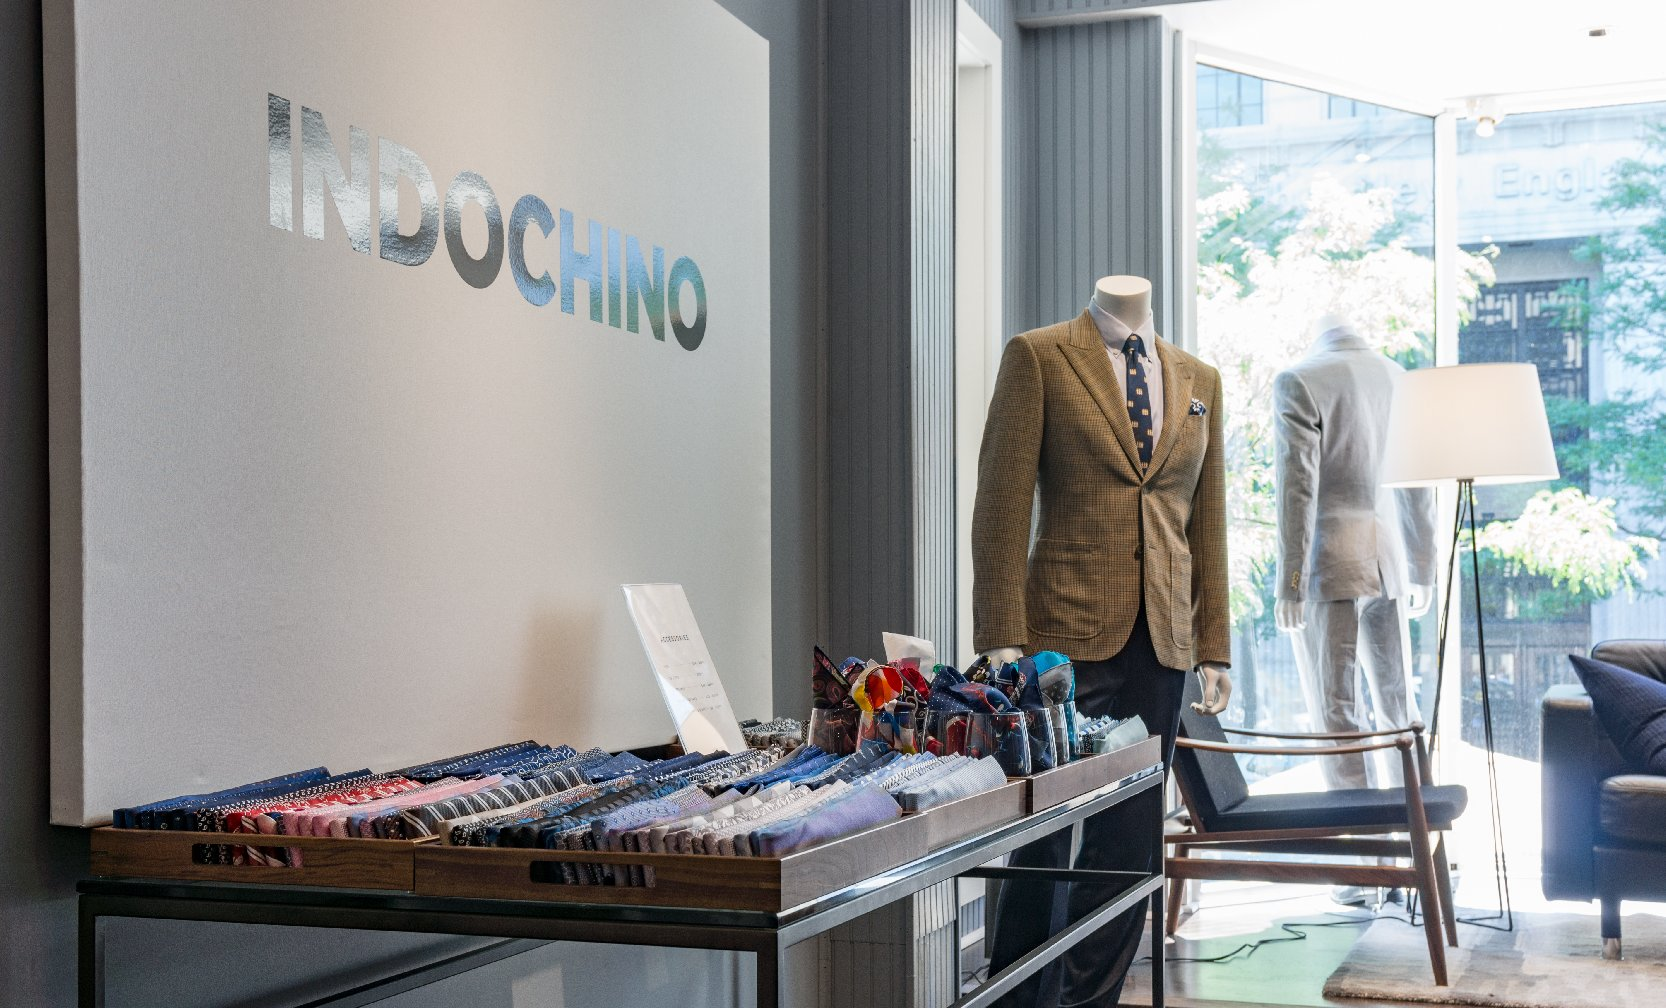 Indochino Newbury Street Boston